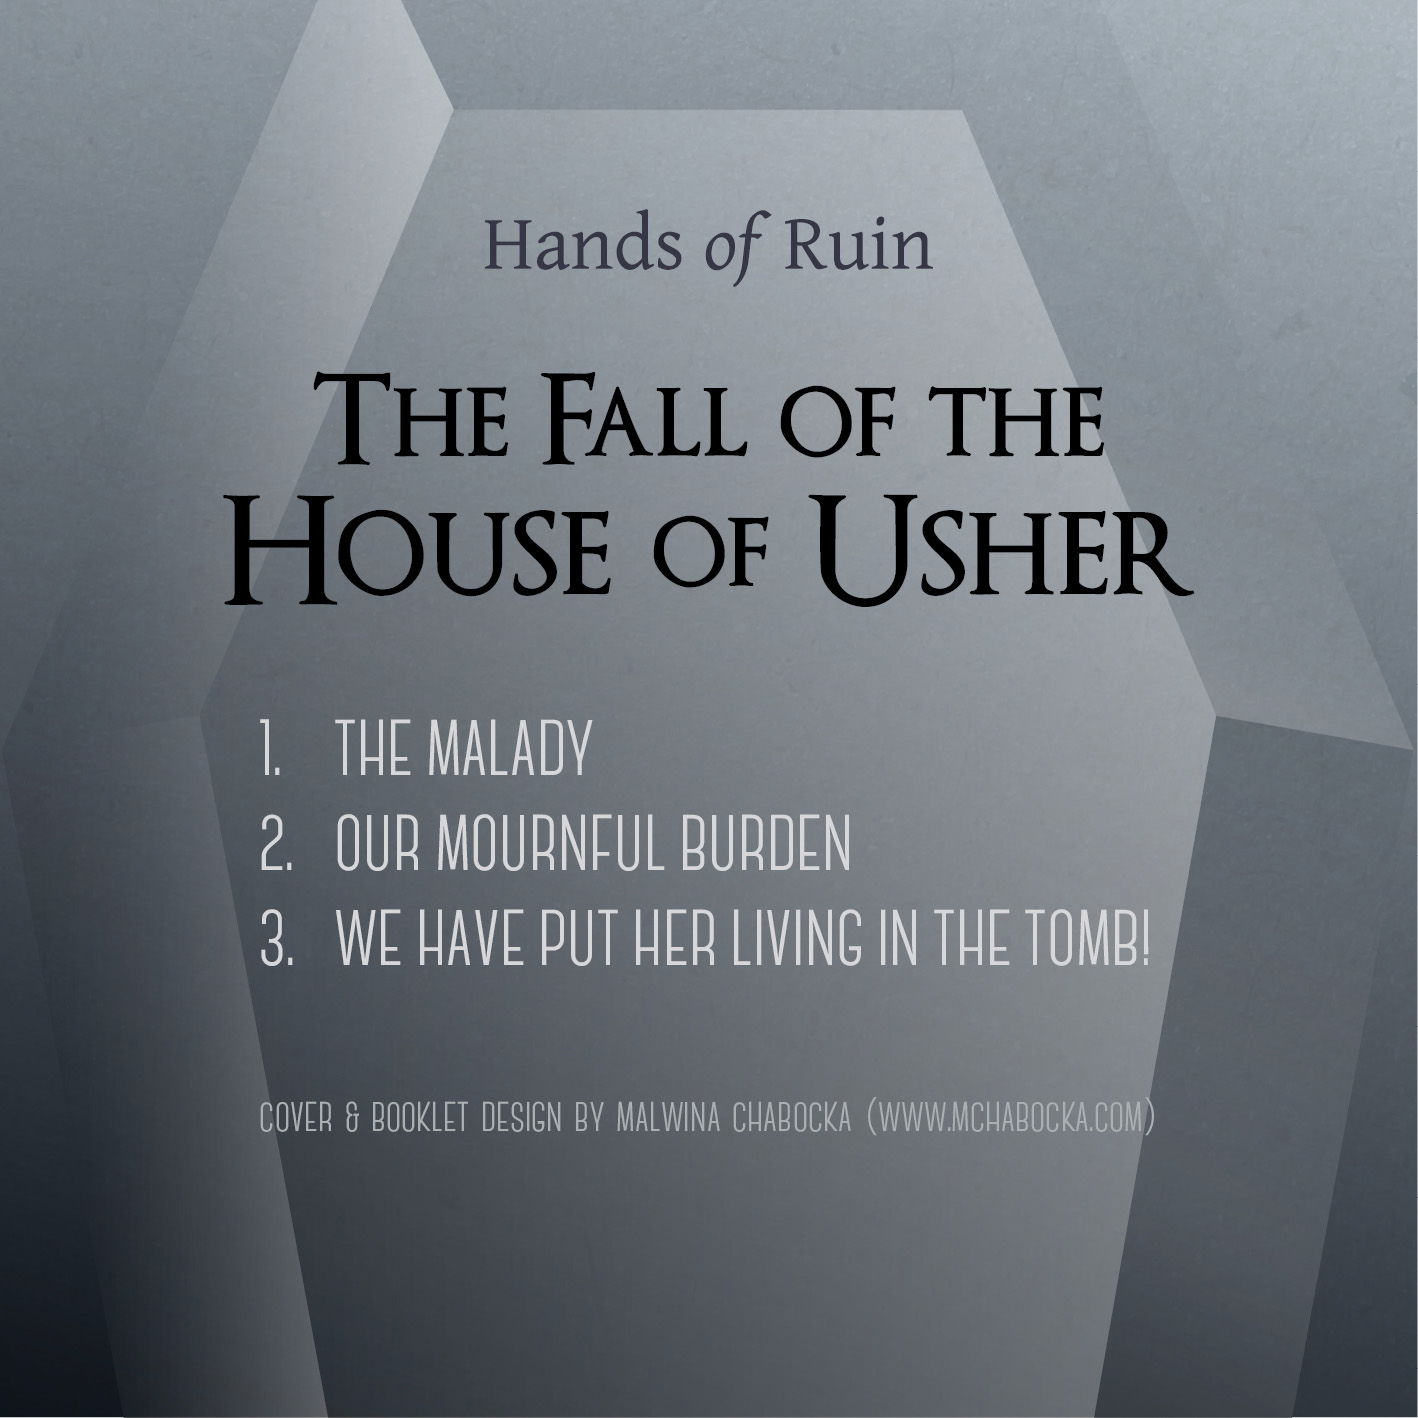 essay questions on the fall of the house of usher The fall of the house of usher during the whole of a dull, dark, and soundless day in autumn of the year, when the clouds hung oppressively low in the heavens- is the opening in the fall of the house of usher by edgar allen poe (1).